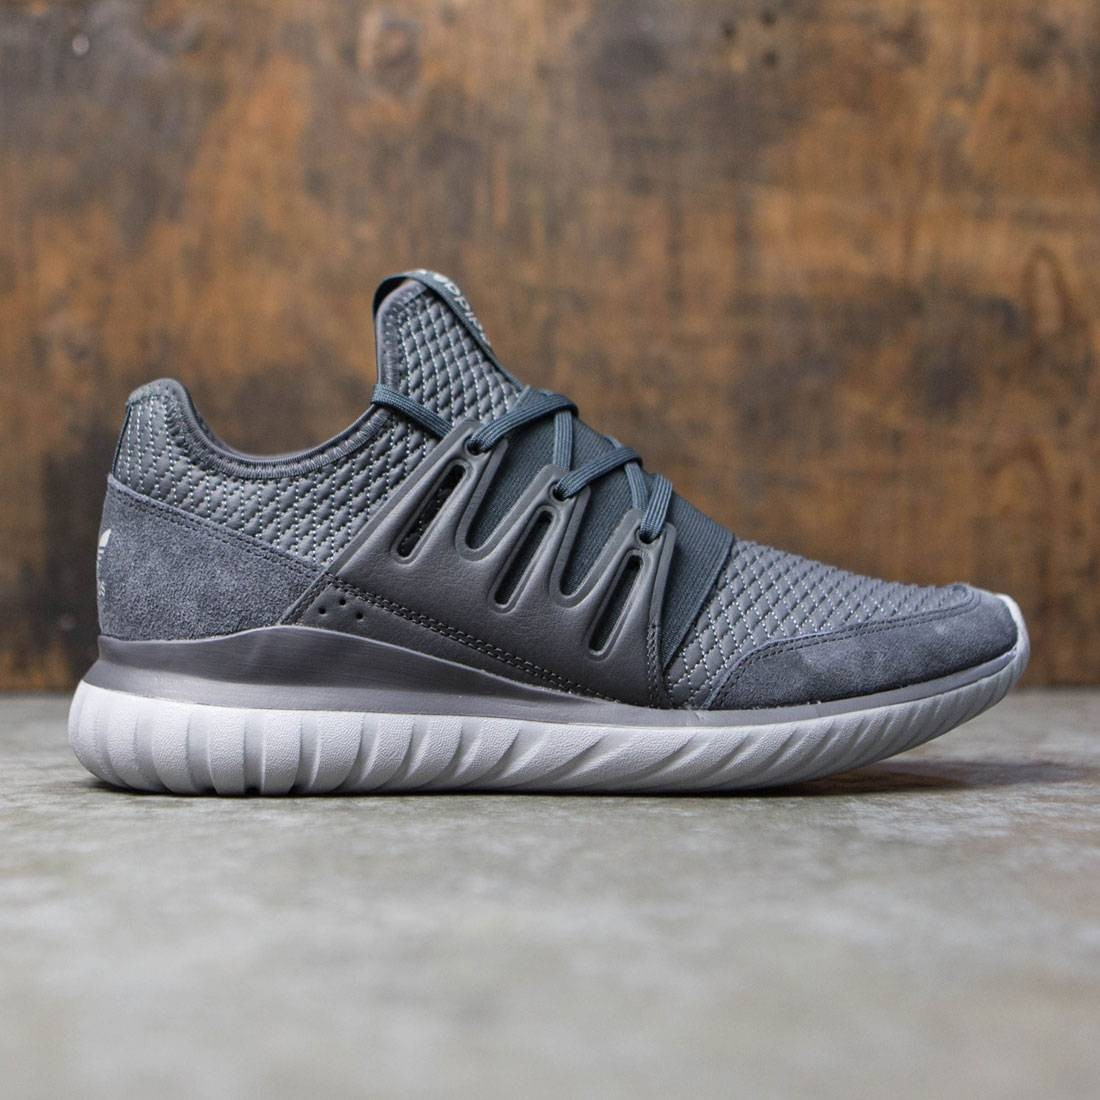 5c79a2f3e07a Adidas Men Tubular Radial gray solid grey